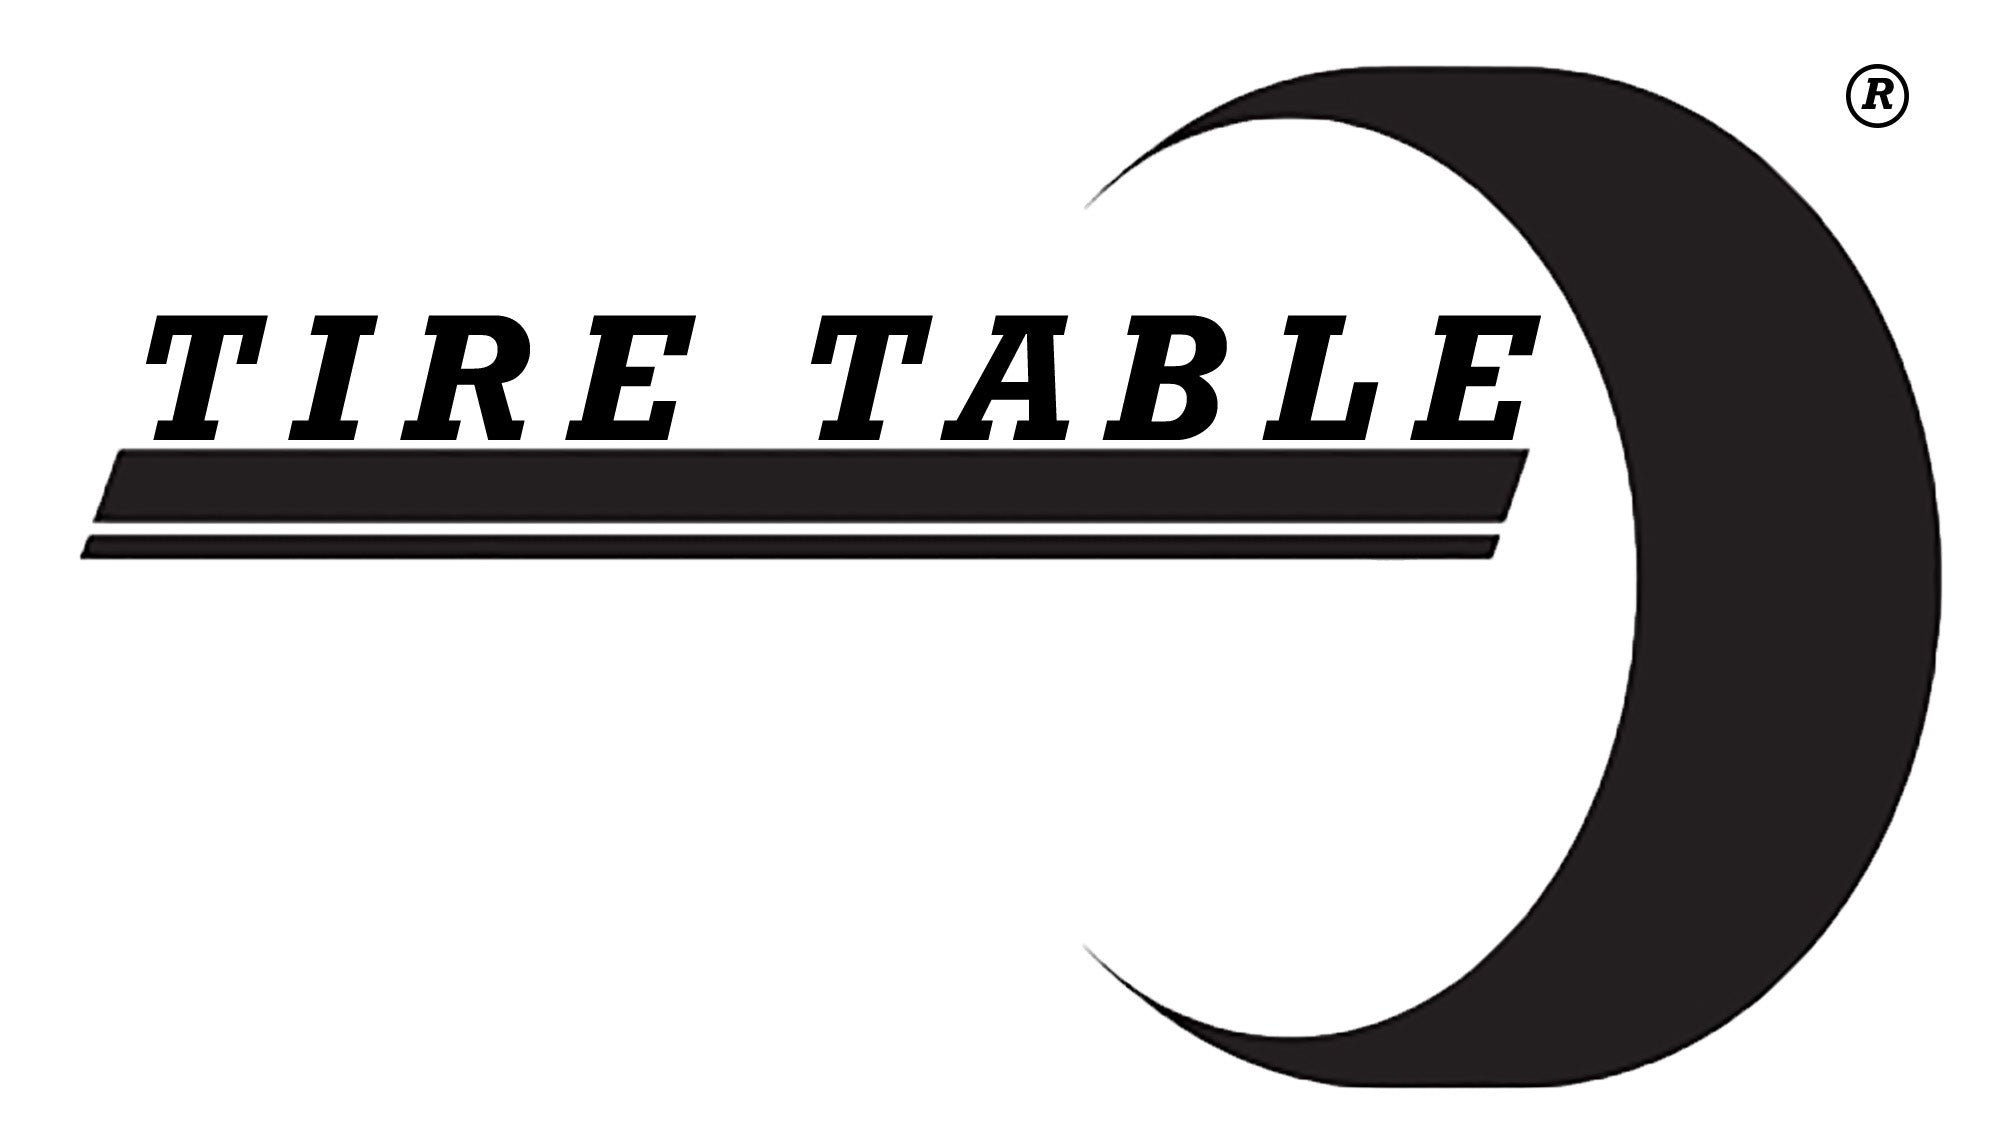 Tailgater Tire Table Tail Gater Tire Table